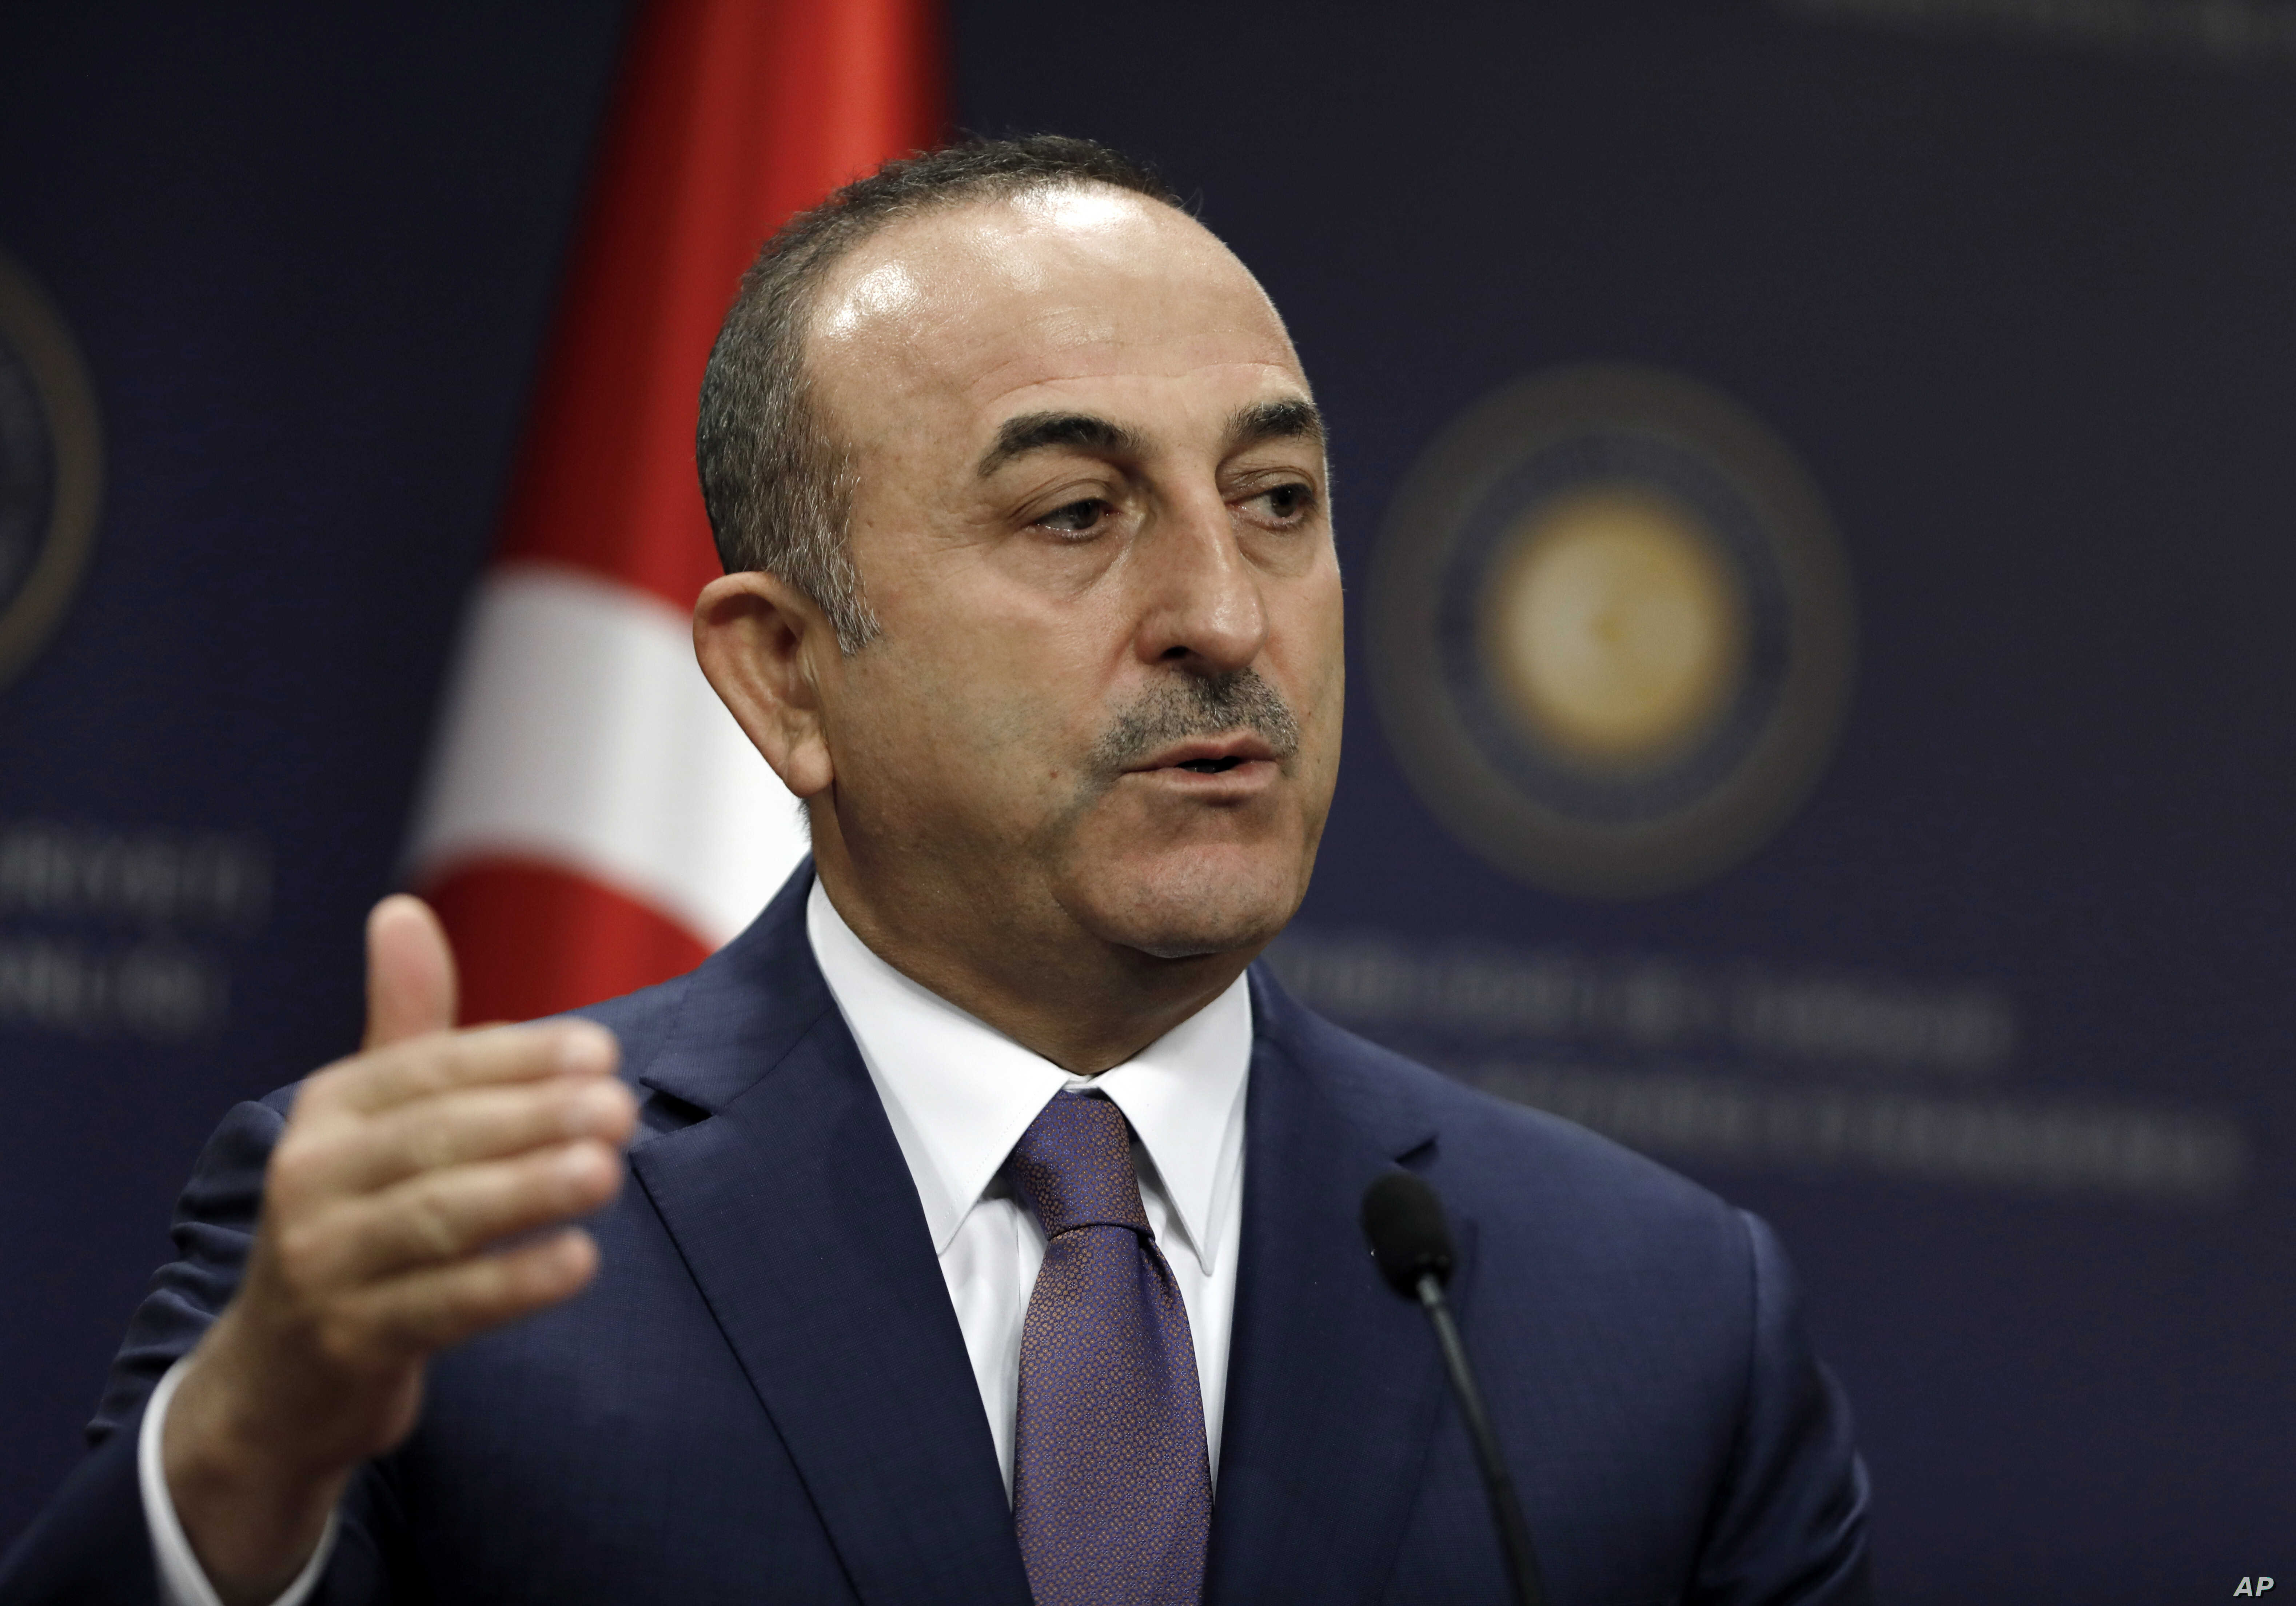 Turkey Slams US as Tensions Escalate Over Iranian Sanctions